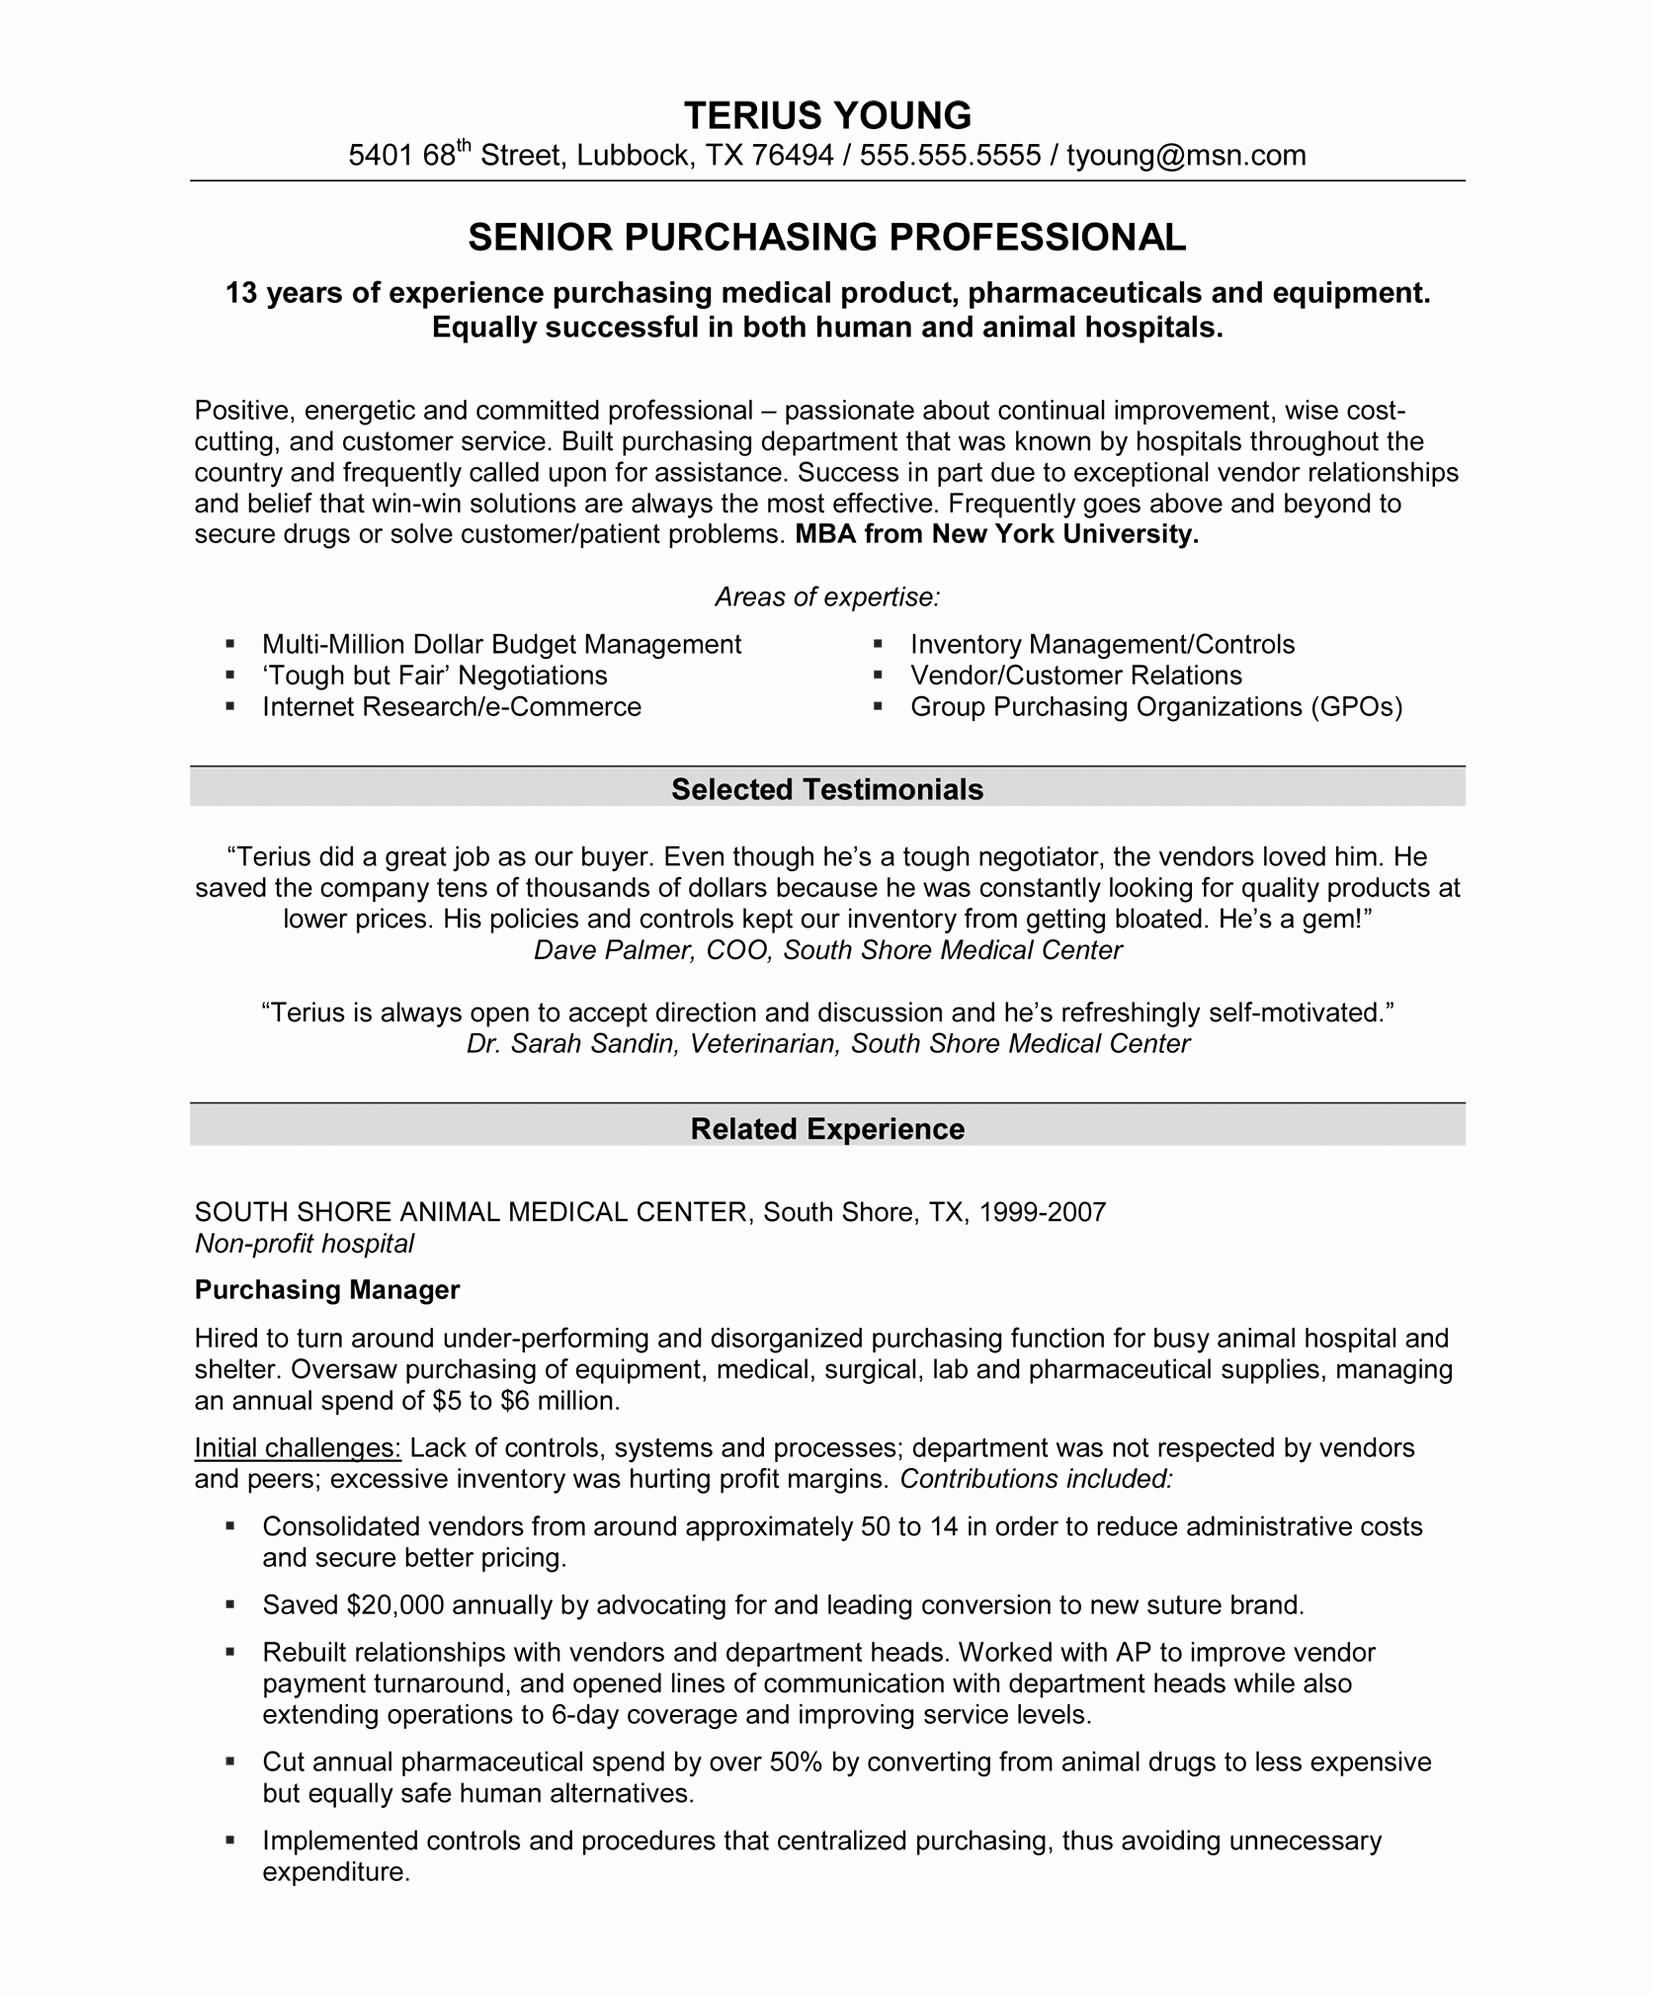 My Perfect Resume Safe - Free Downloads My Perfect Resume Customer Service Number